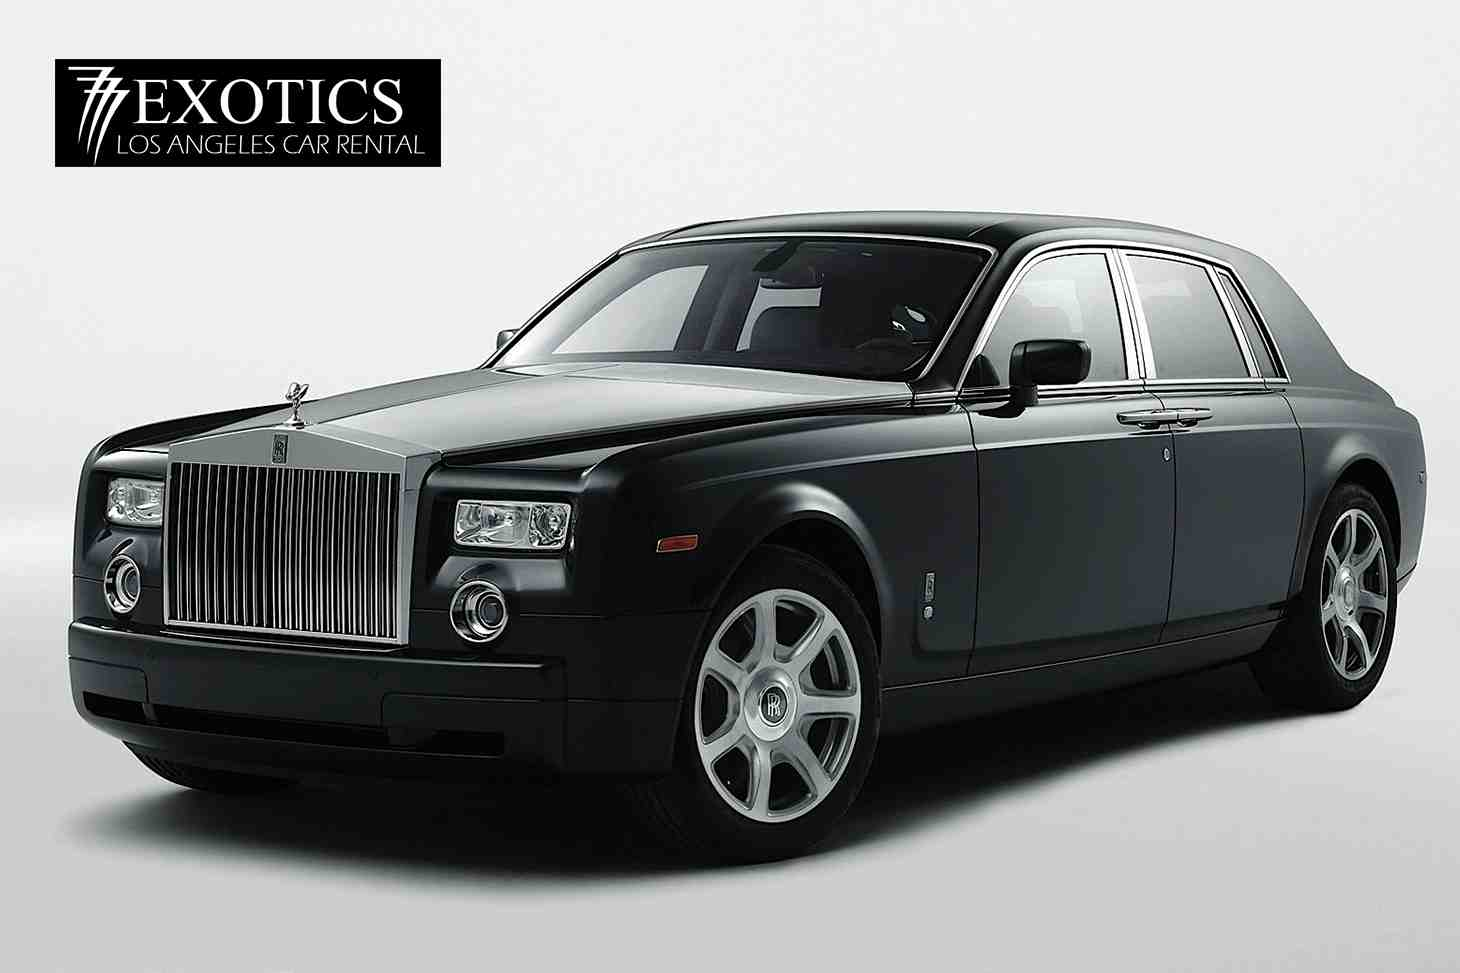 rolls royce phantom 777 exotic car rental los angeles. Black Bedroom Furniture Sets. Home Design Ideas